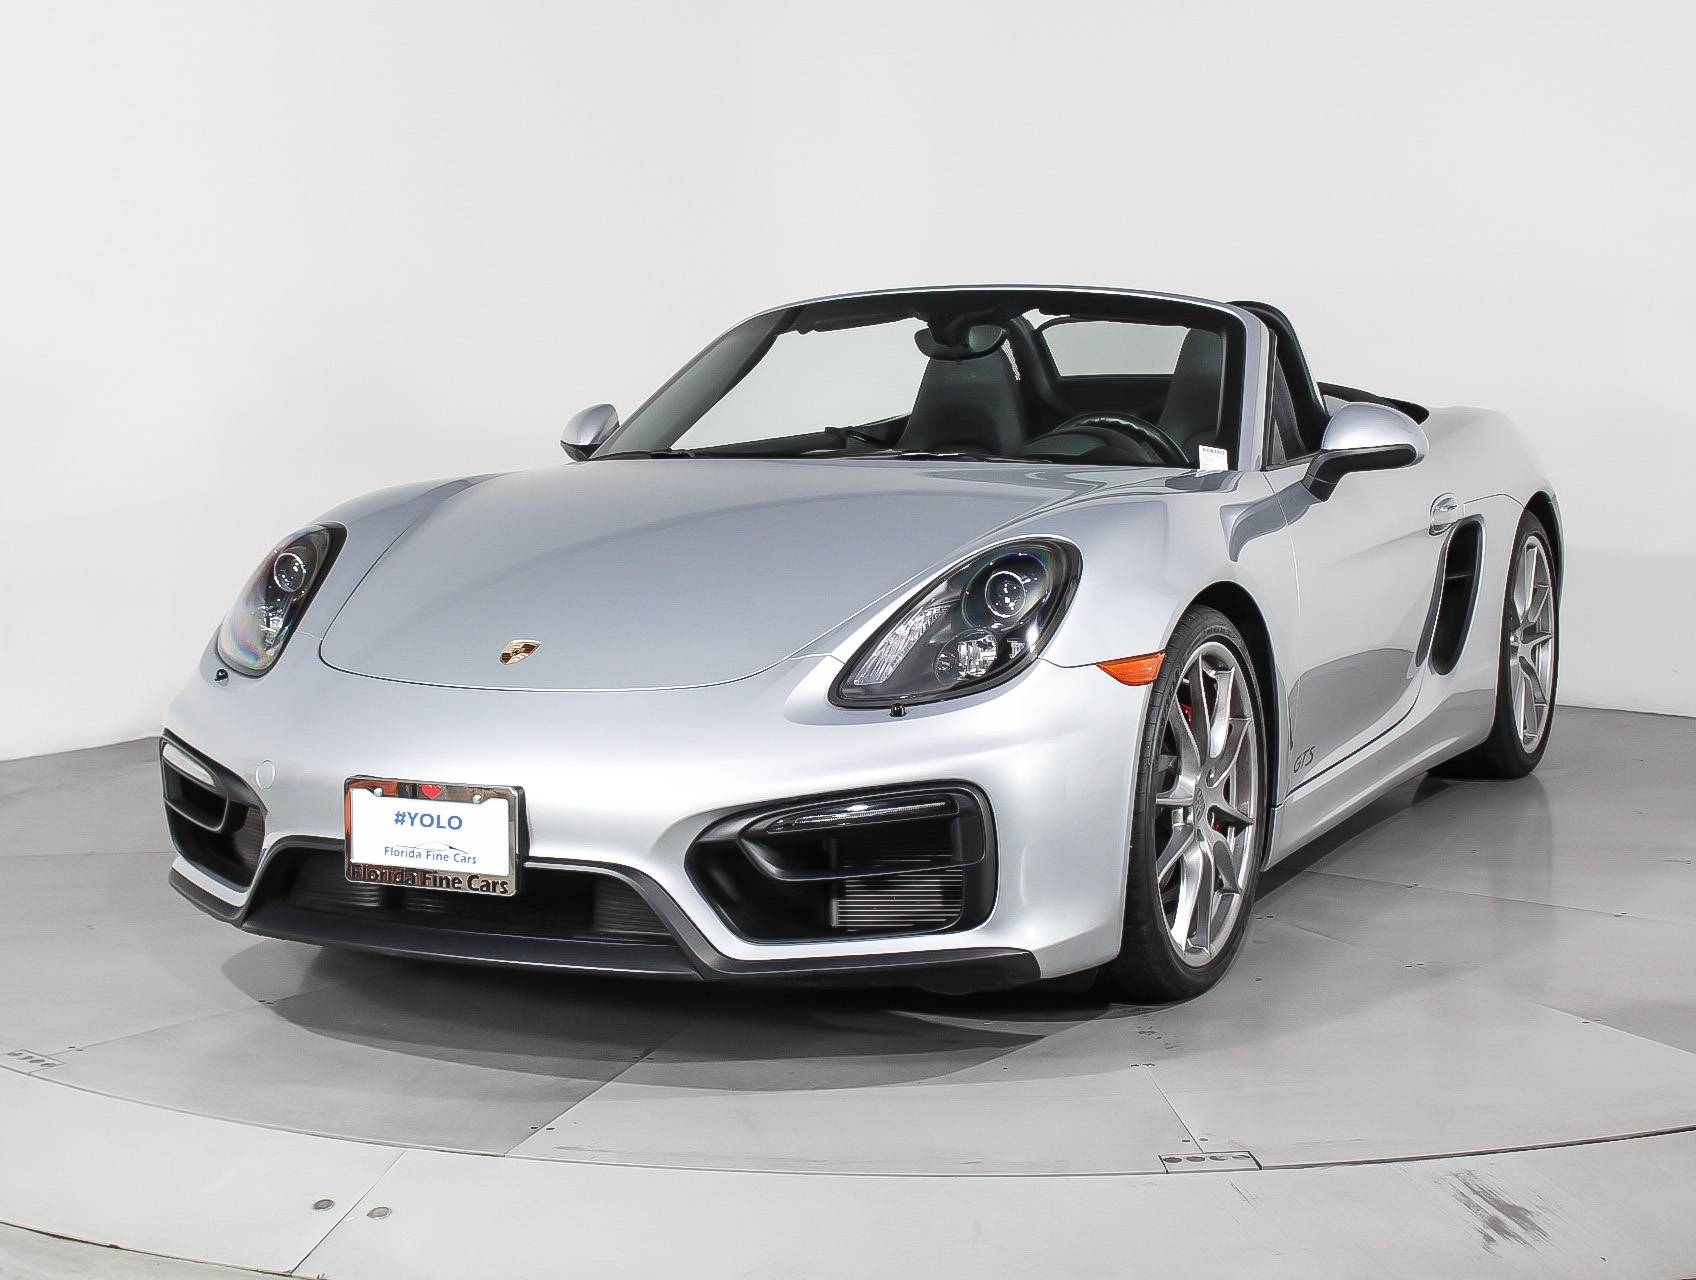 Used 2015 Porsche Boxster Gts Convertible For Sale In Miami